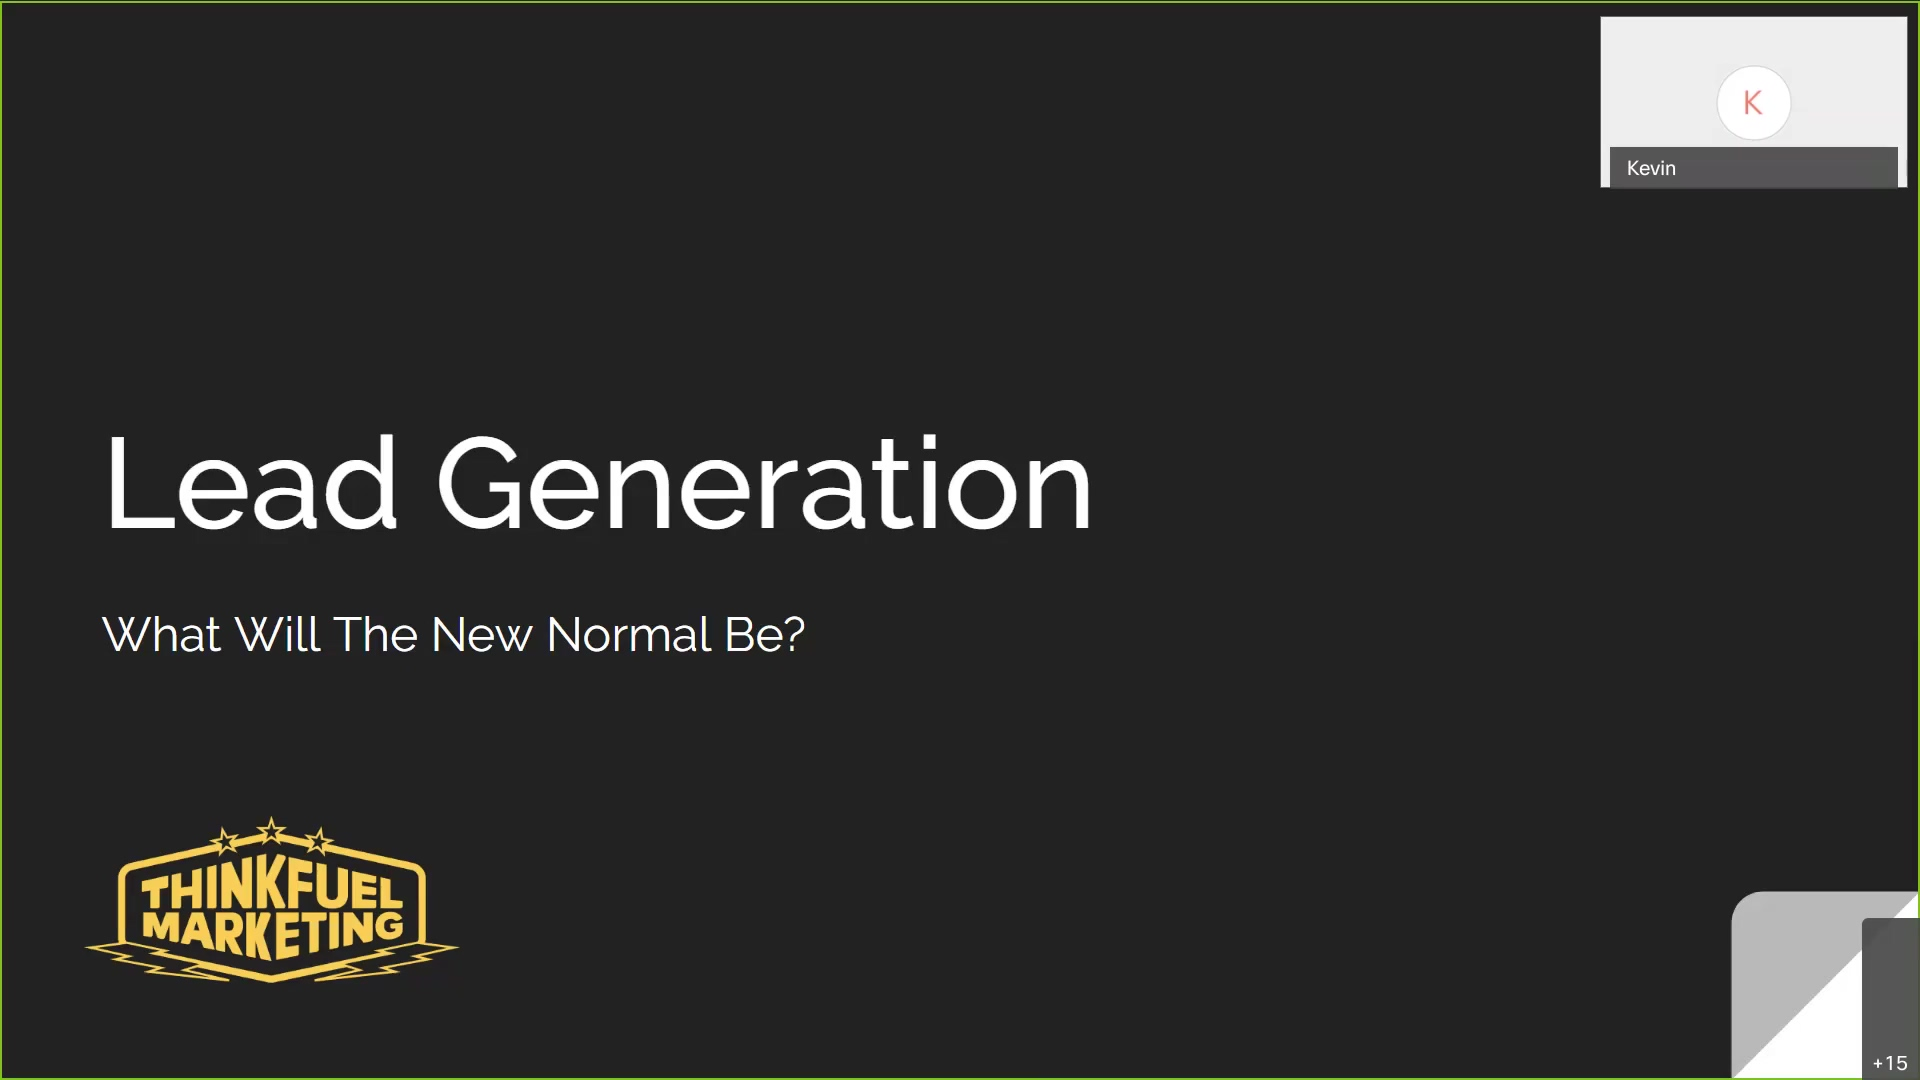 Lead Generation What Will the New Normal Be-20200525 1605-1